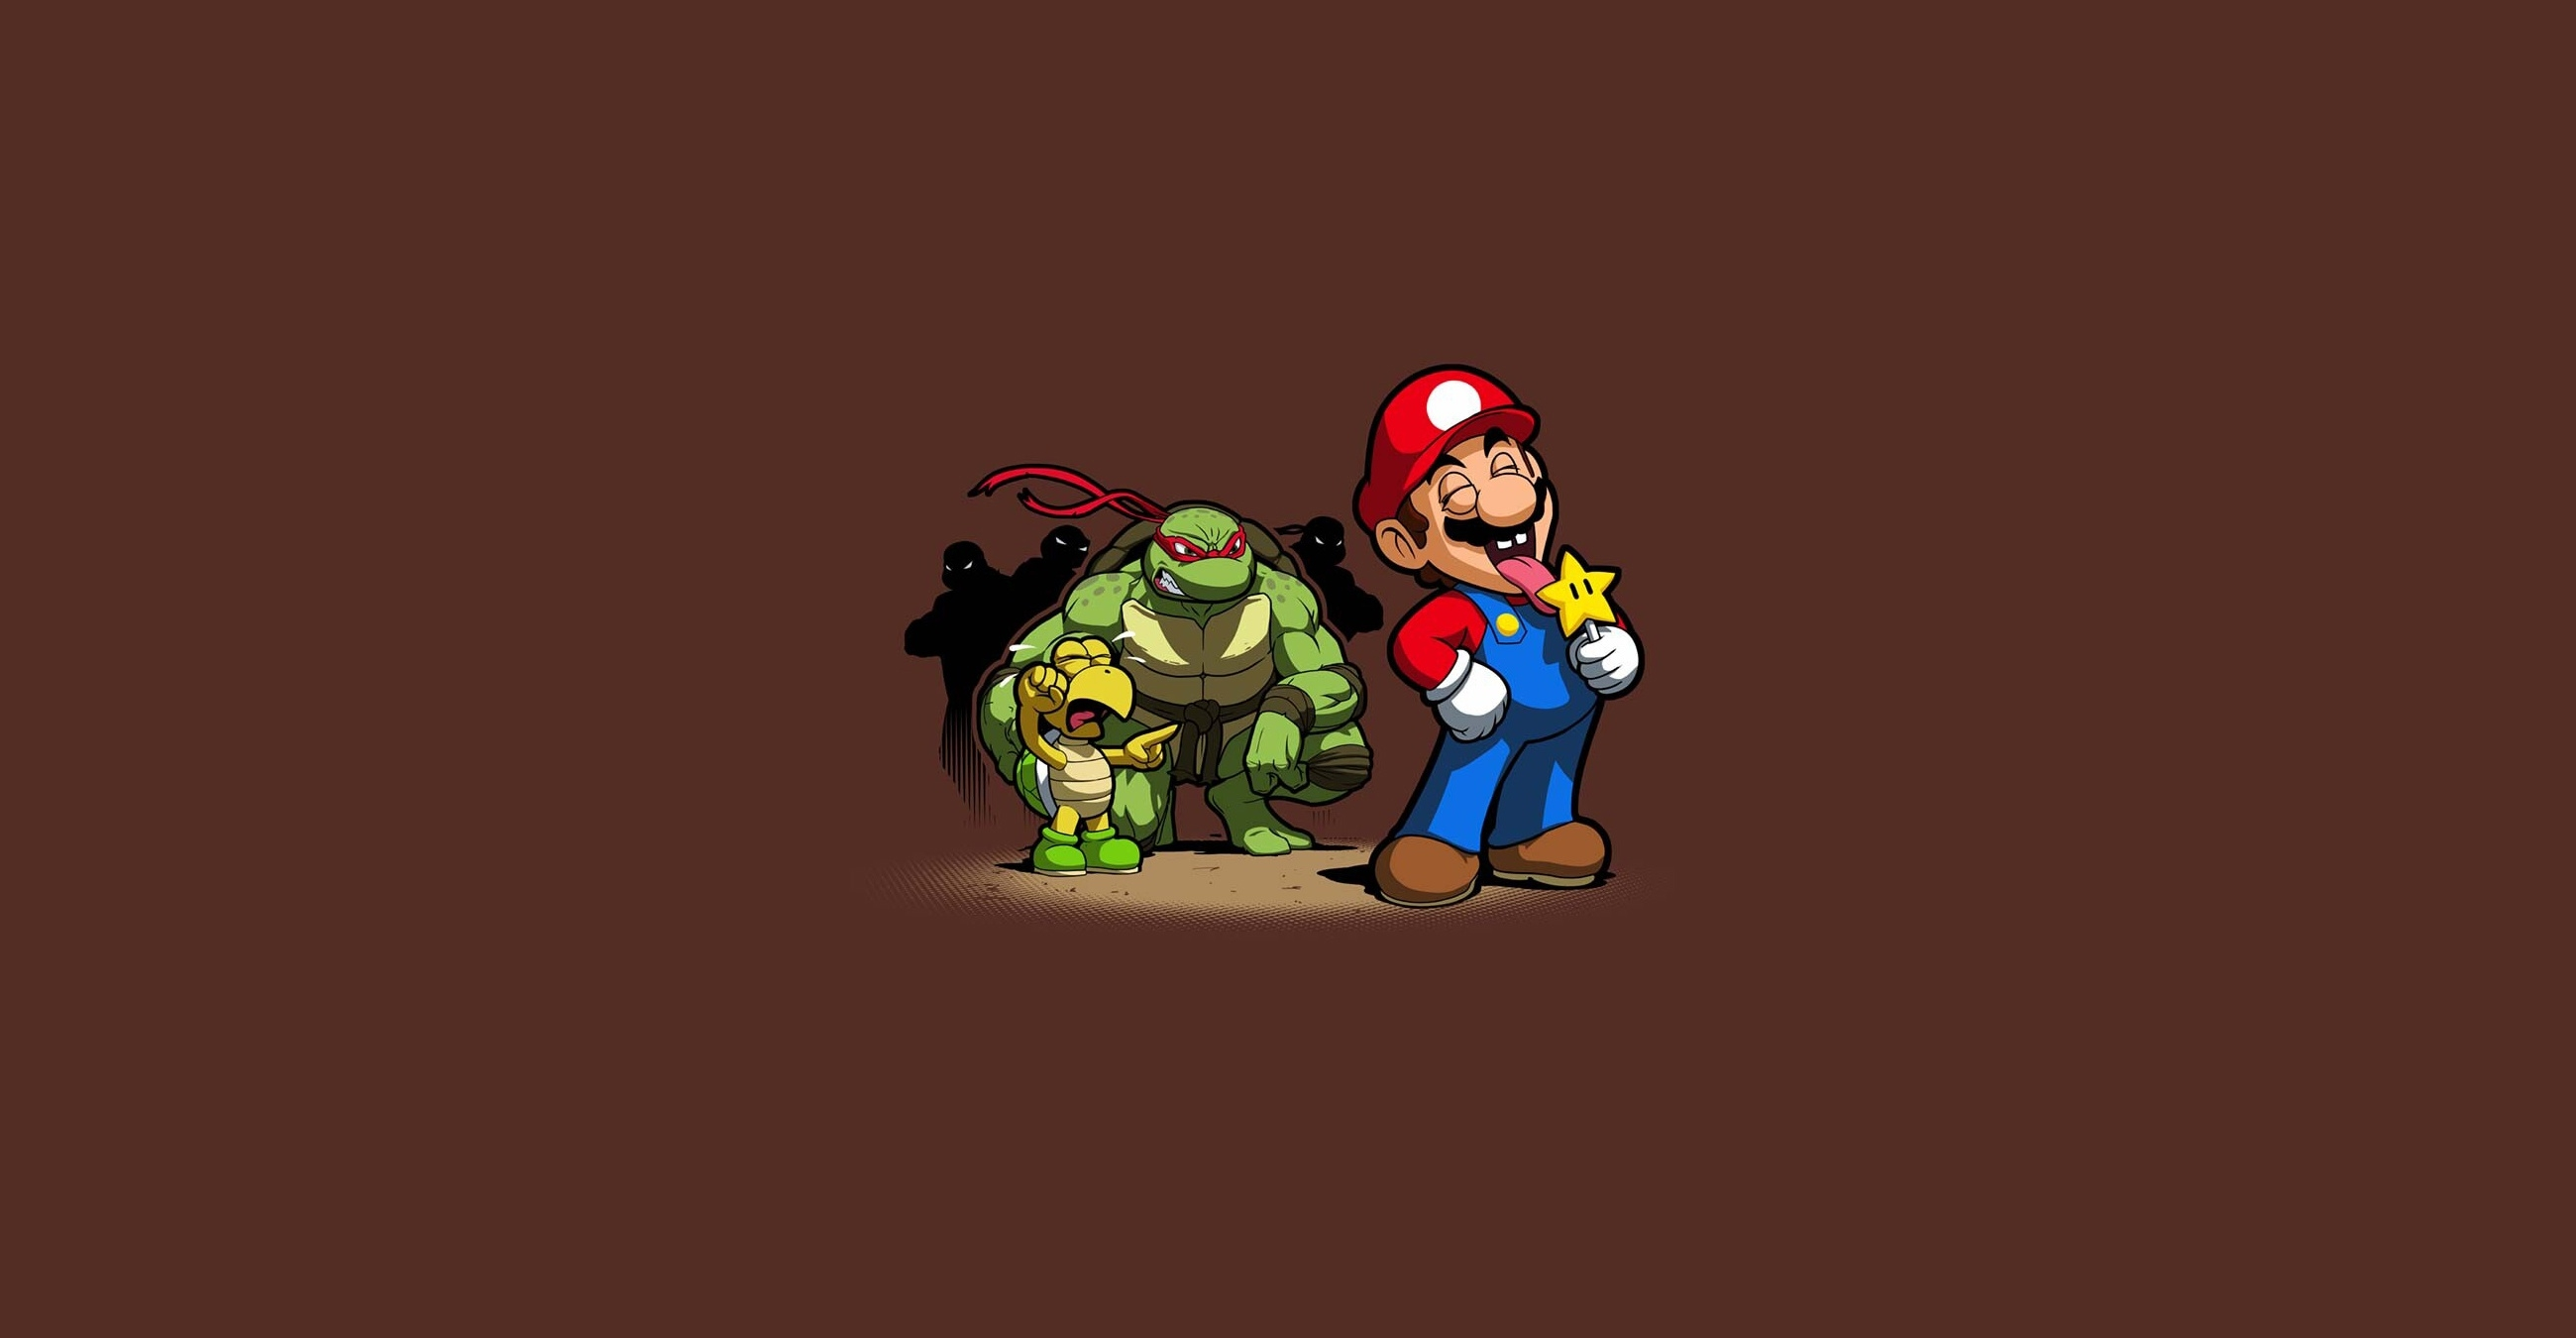 480x484 Super Mario And Teenage Mutan Ninja Turtles Android